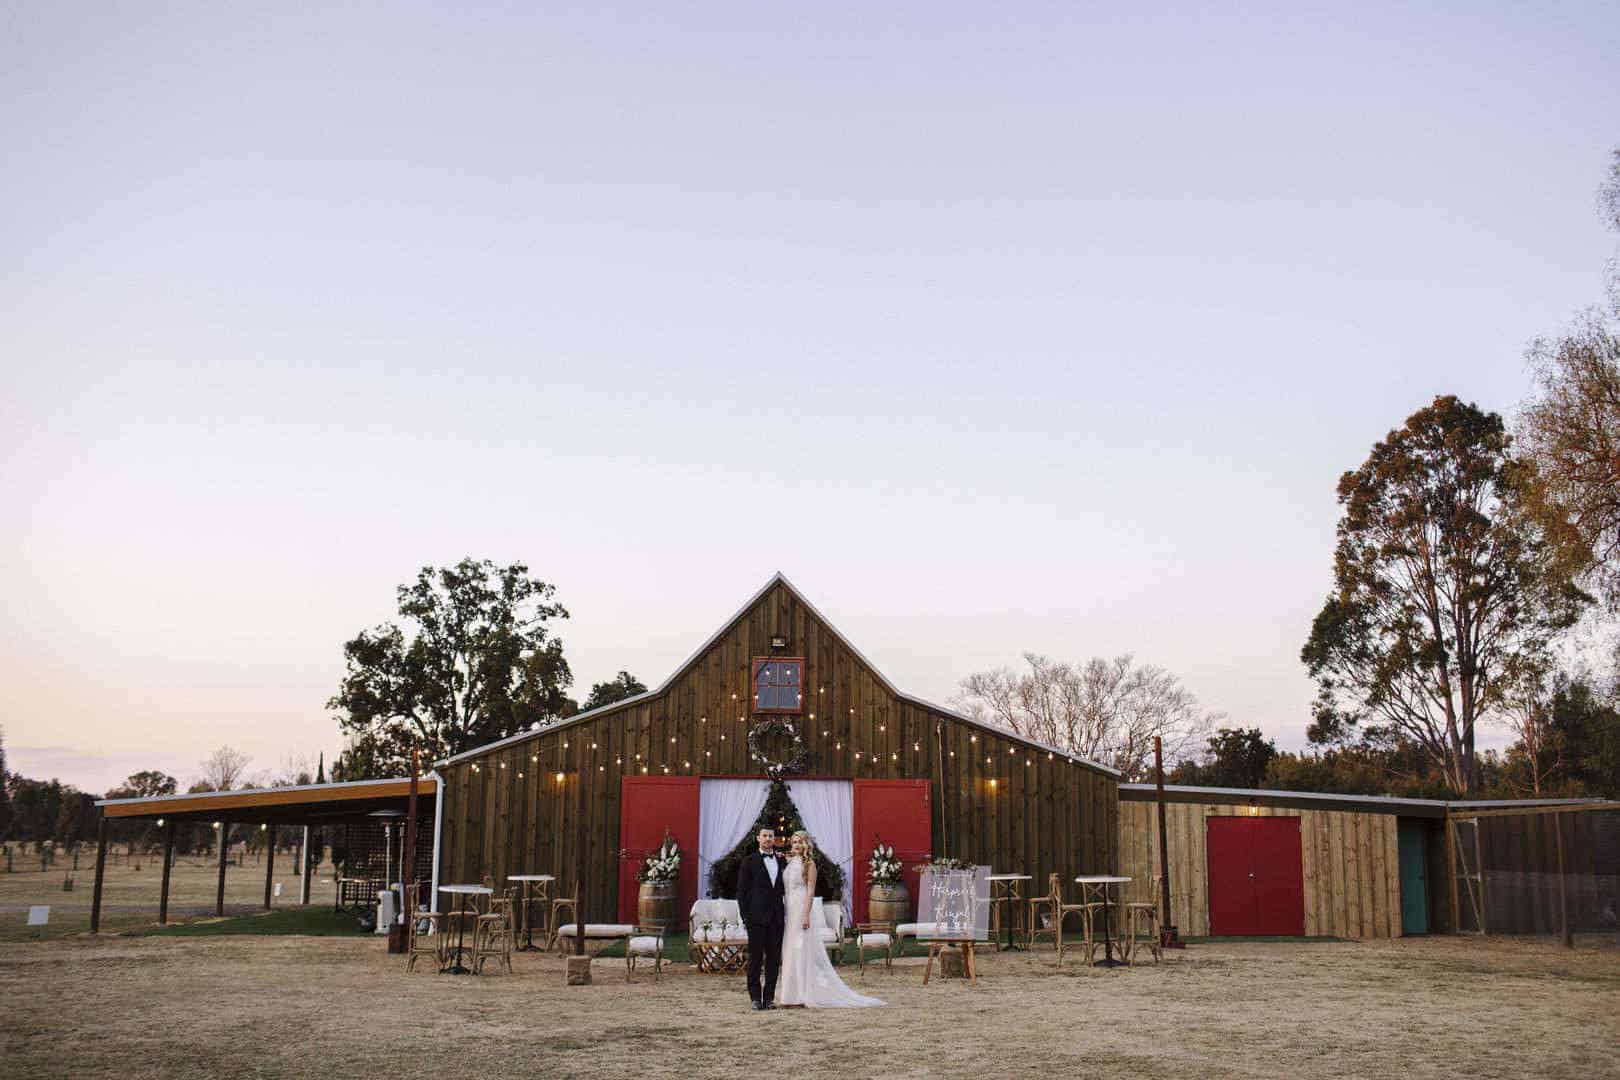 Bride and groom in front of decorated barn